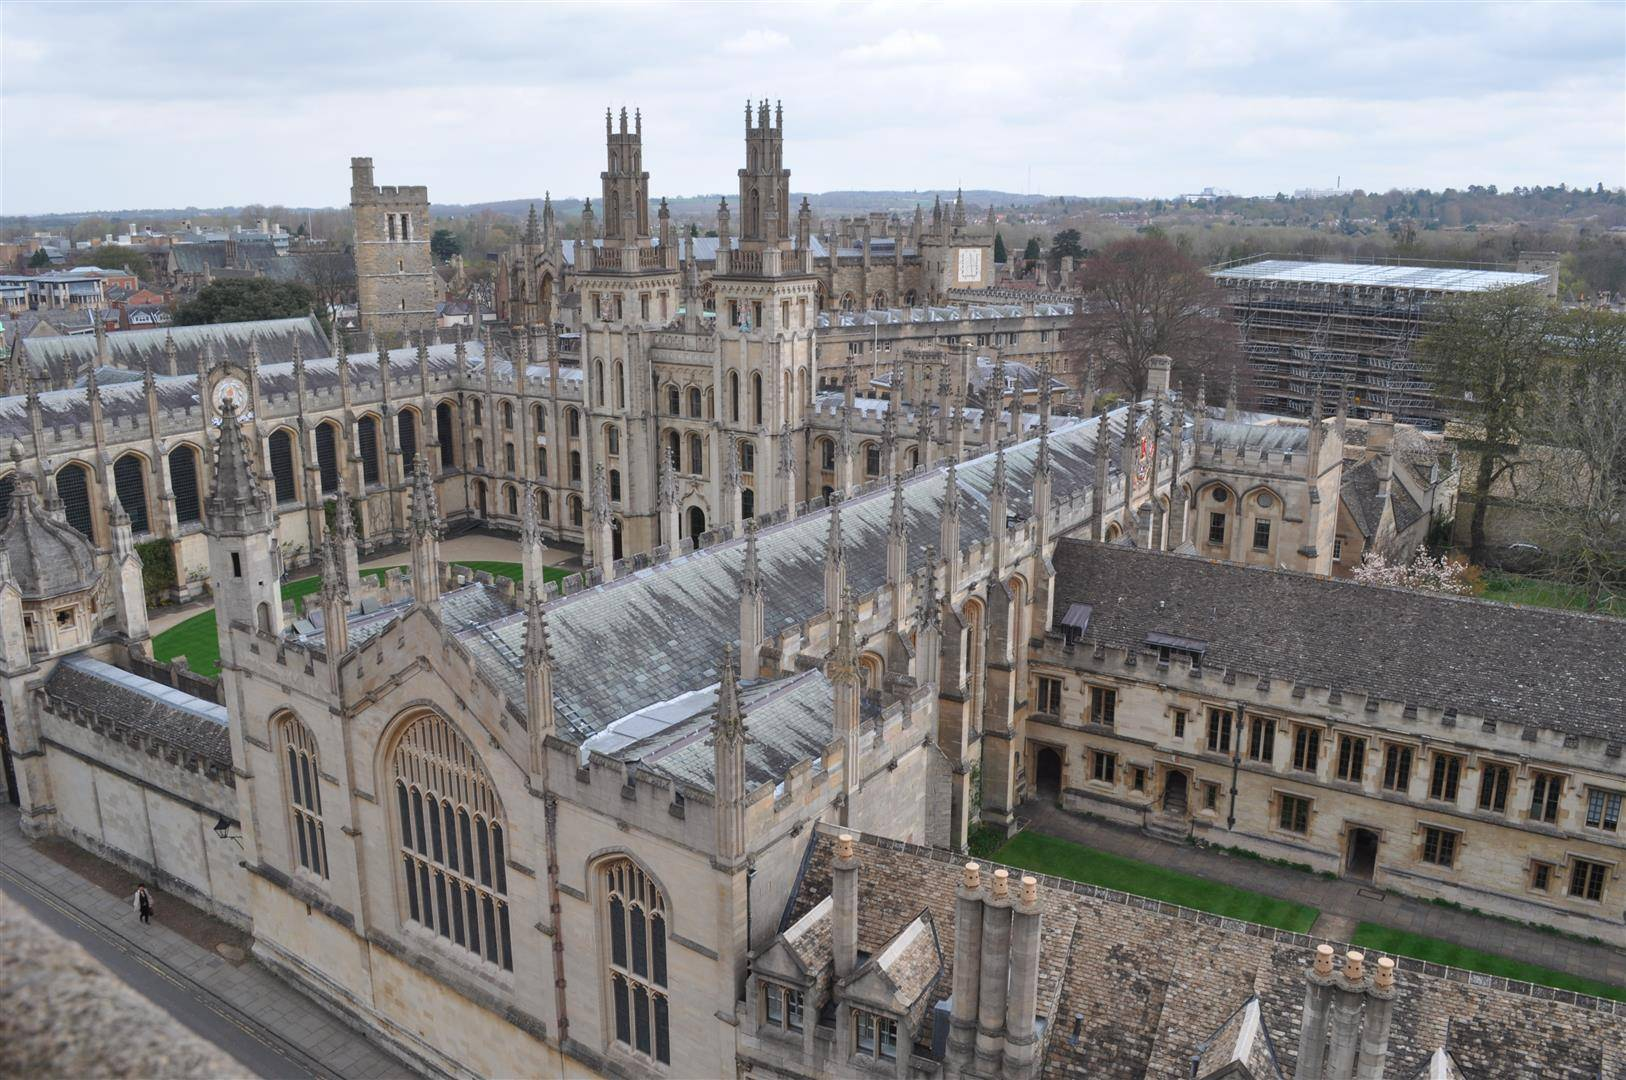 View from the Tower 2, University Church of St. Mary the Virgin, Oxford